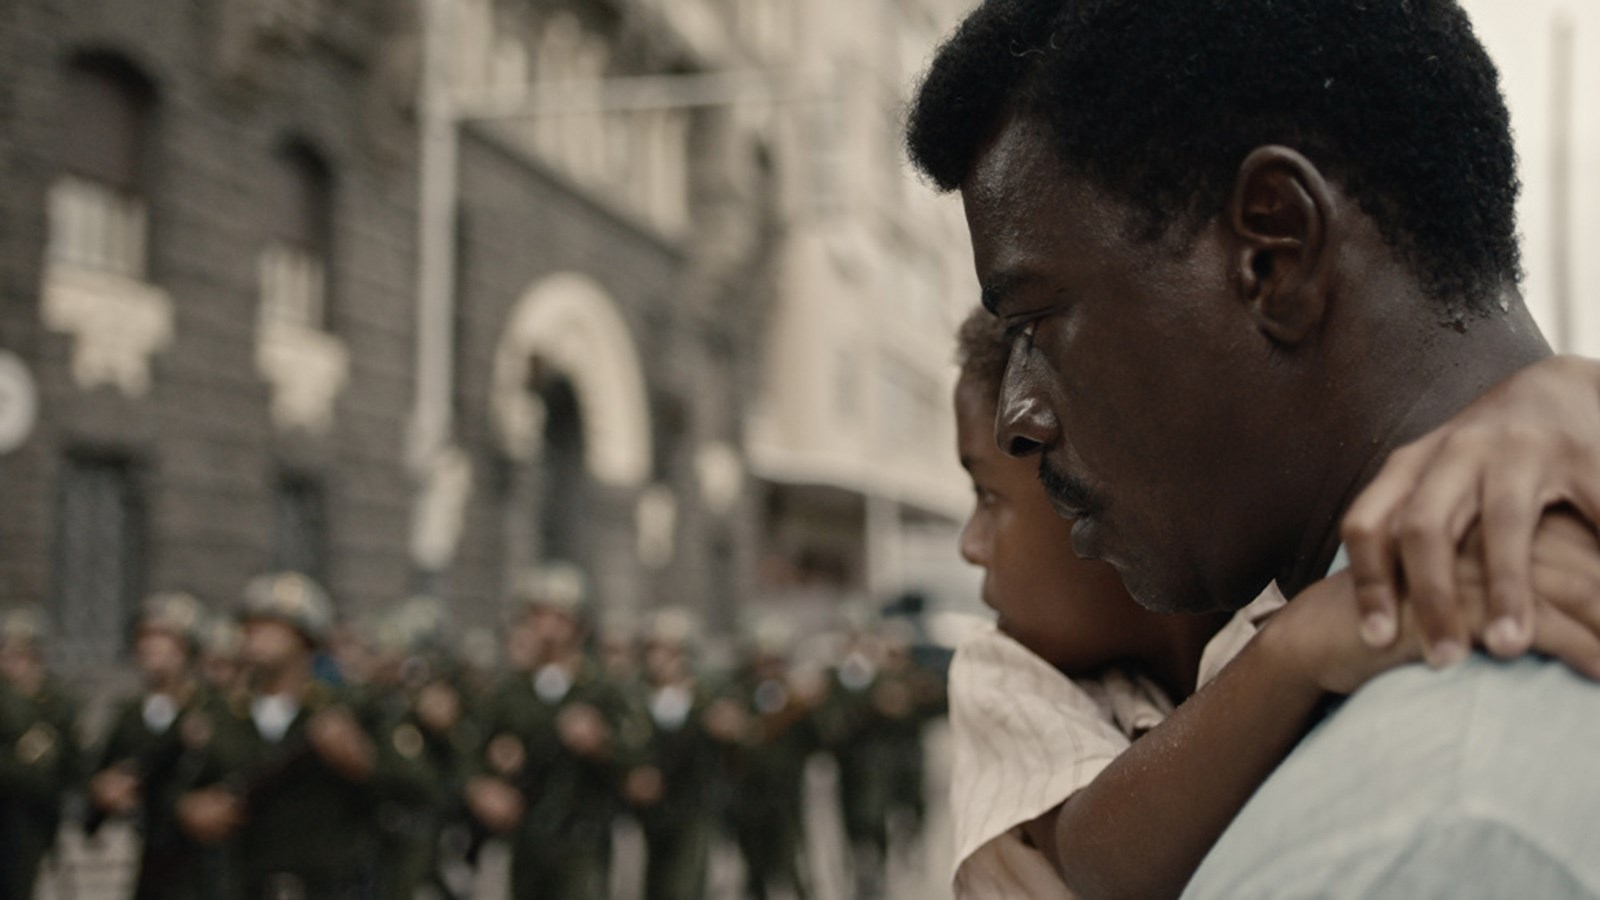 REVIEW: Contentious 'Marighella' Biopic Is an Engaging Look at the Brazilian Guerilla Fighter